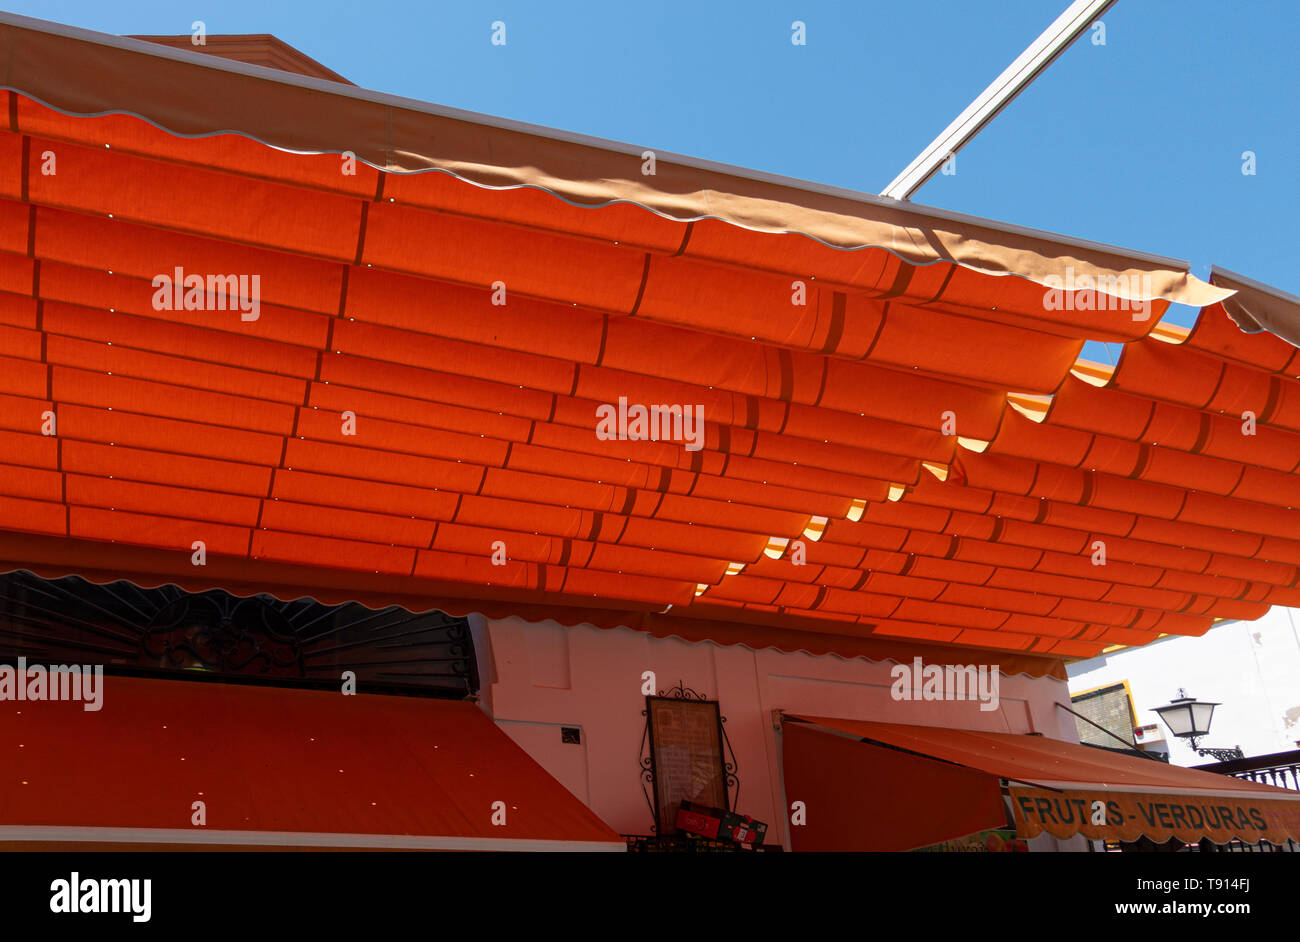 Awning for shade in a produce market on a hot summer day in Seville - Stock Image